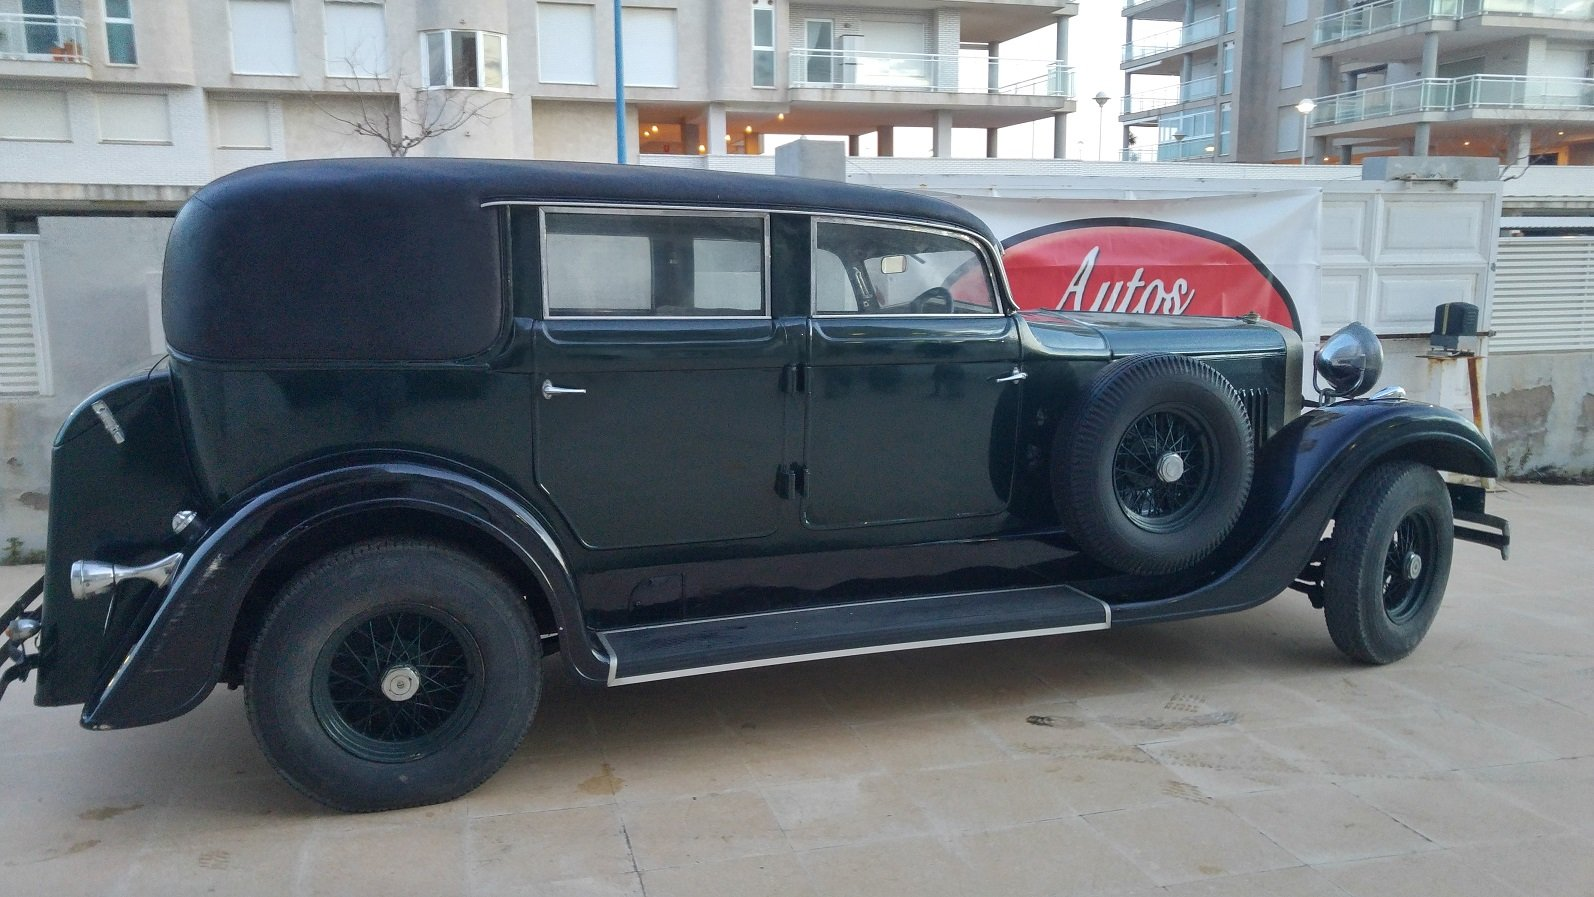 1925 Hispano suiza t49 For Sale (picture 2 of 6)